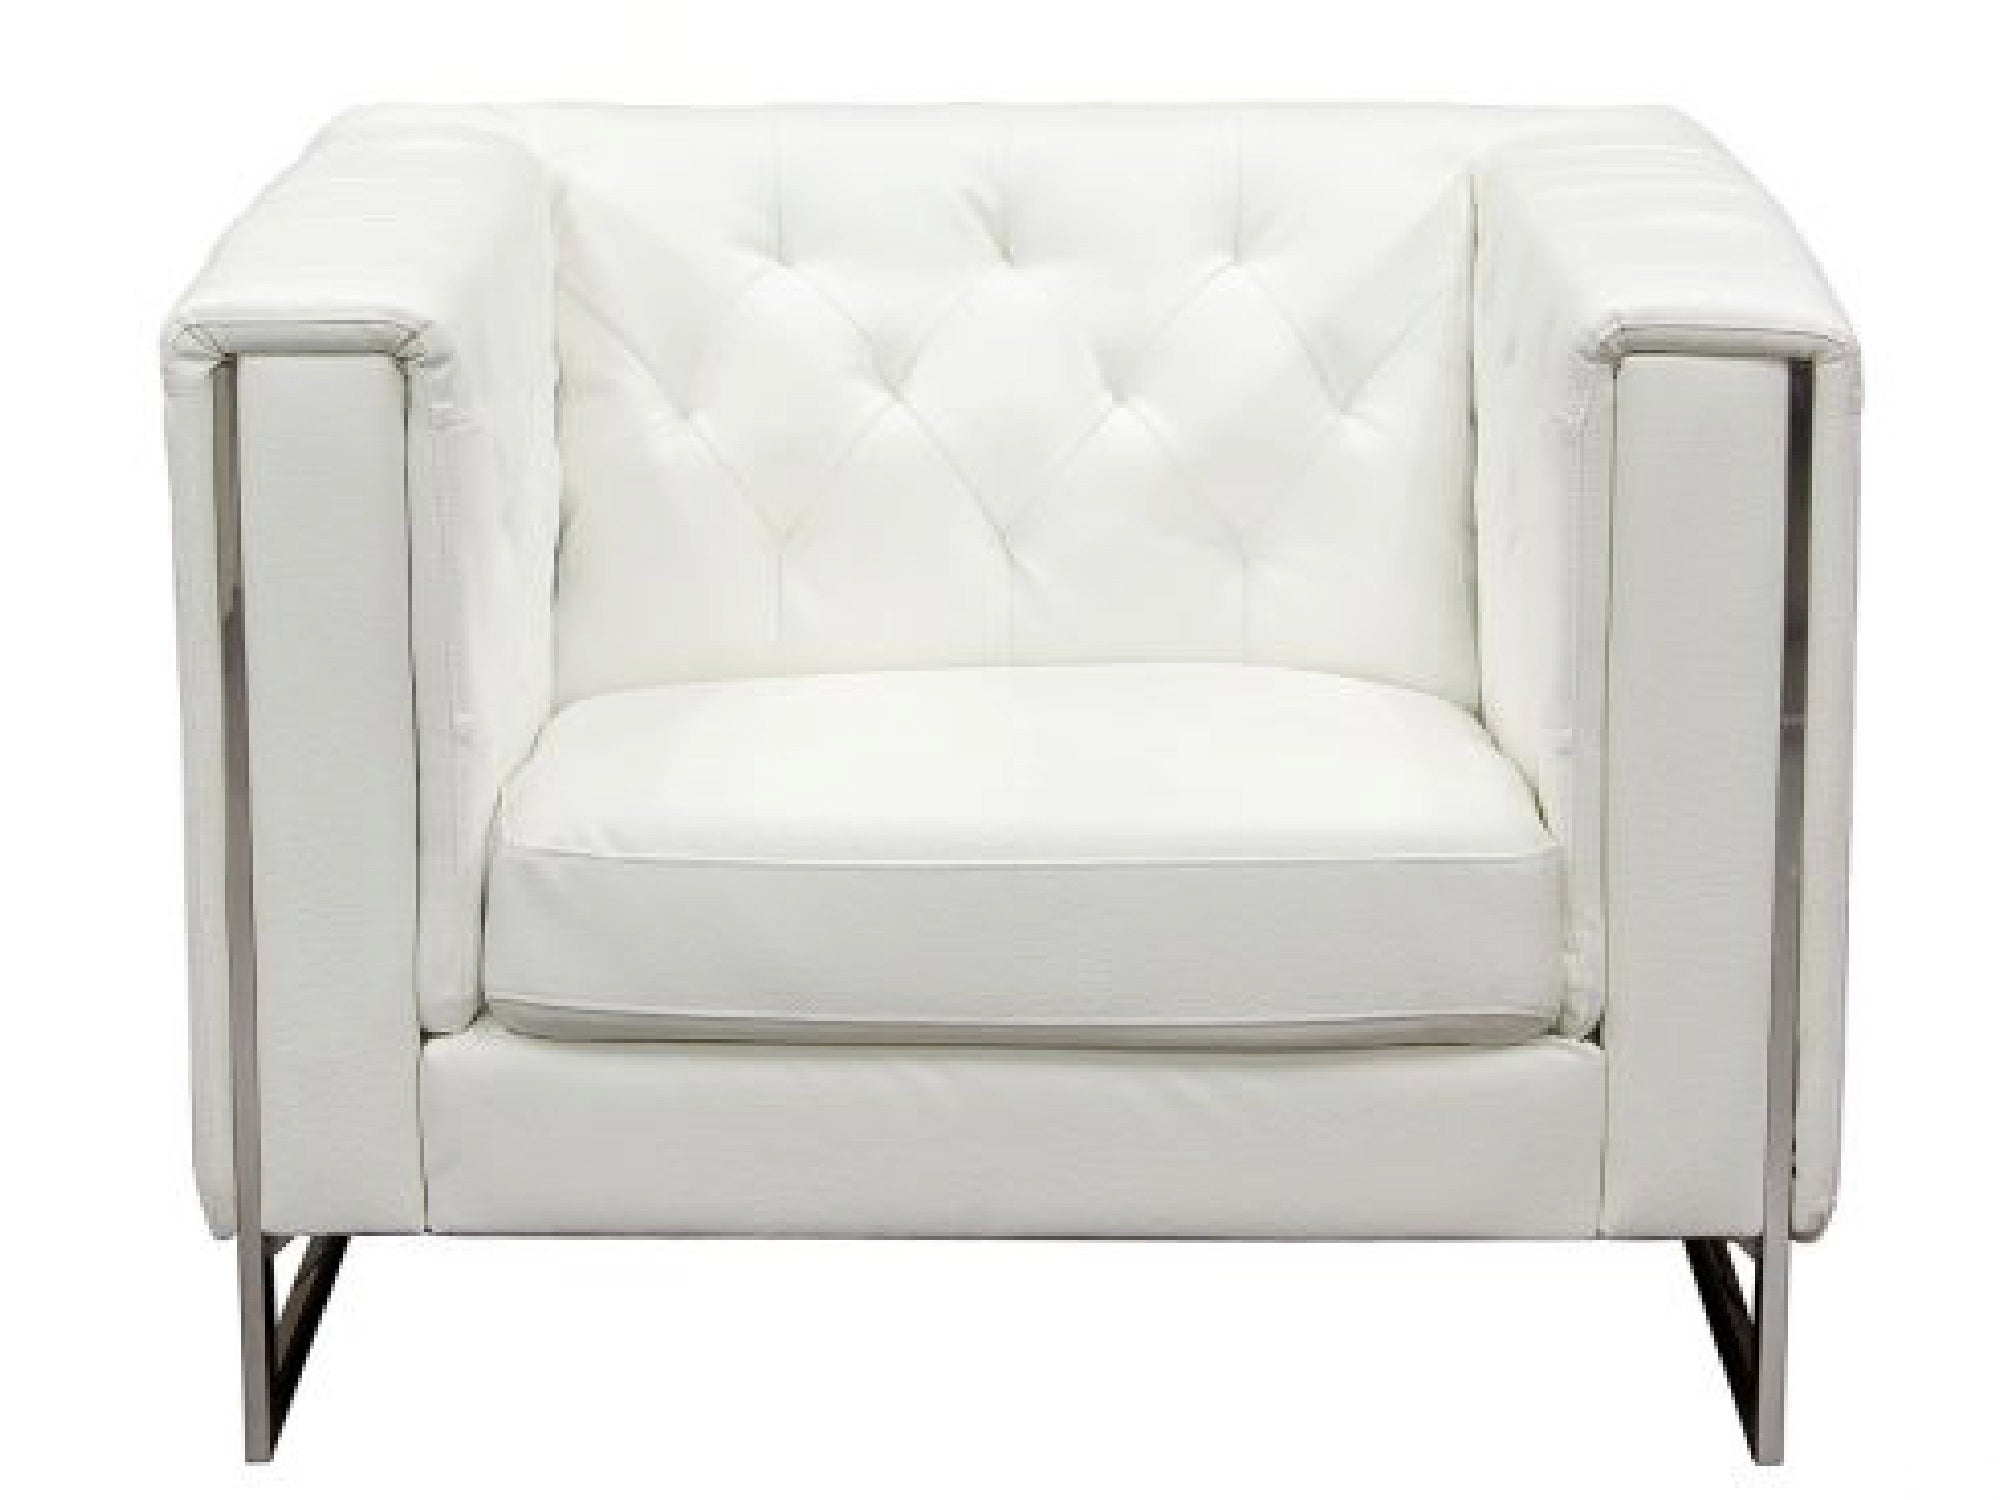 METRO CHROME ARMCHAIR - WHITE